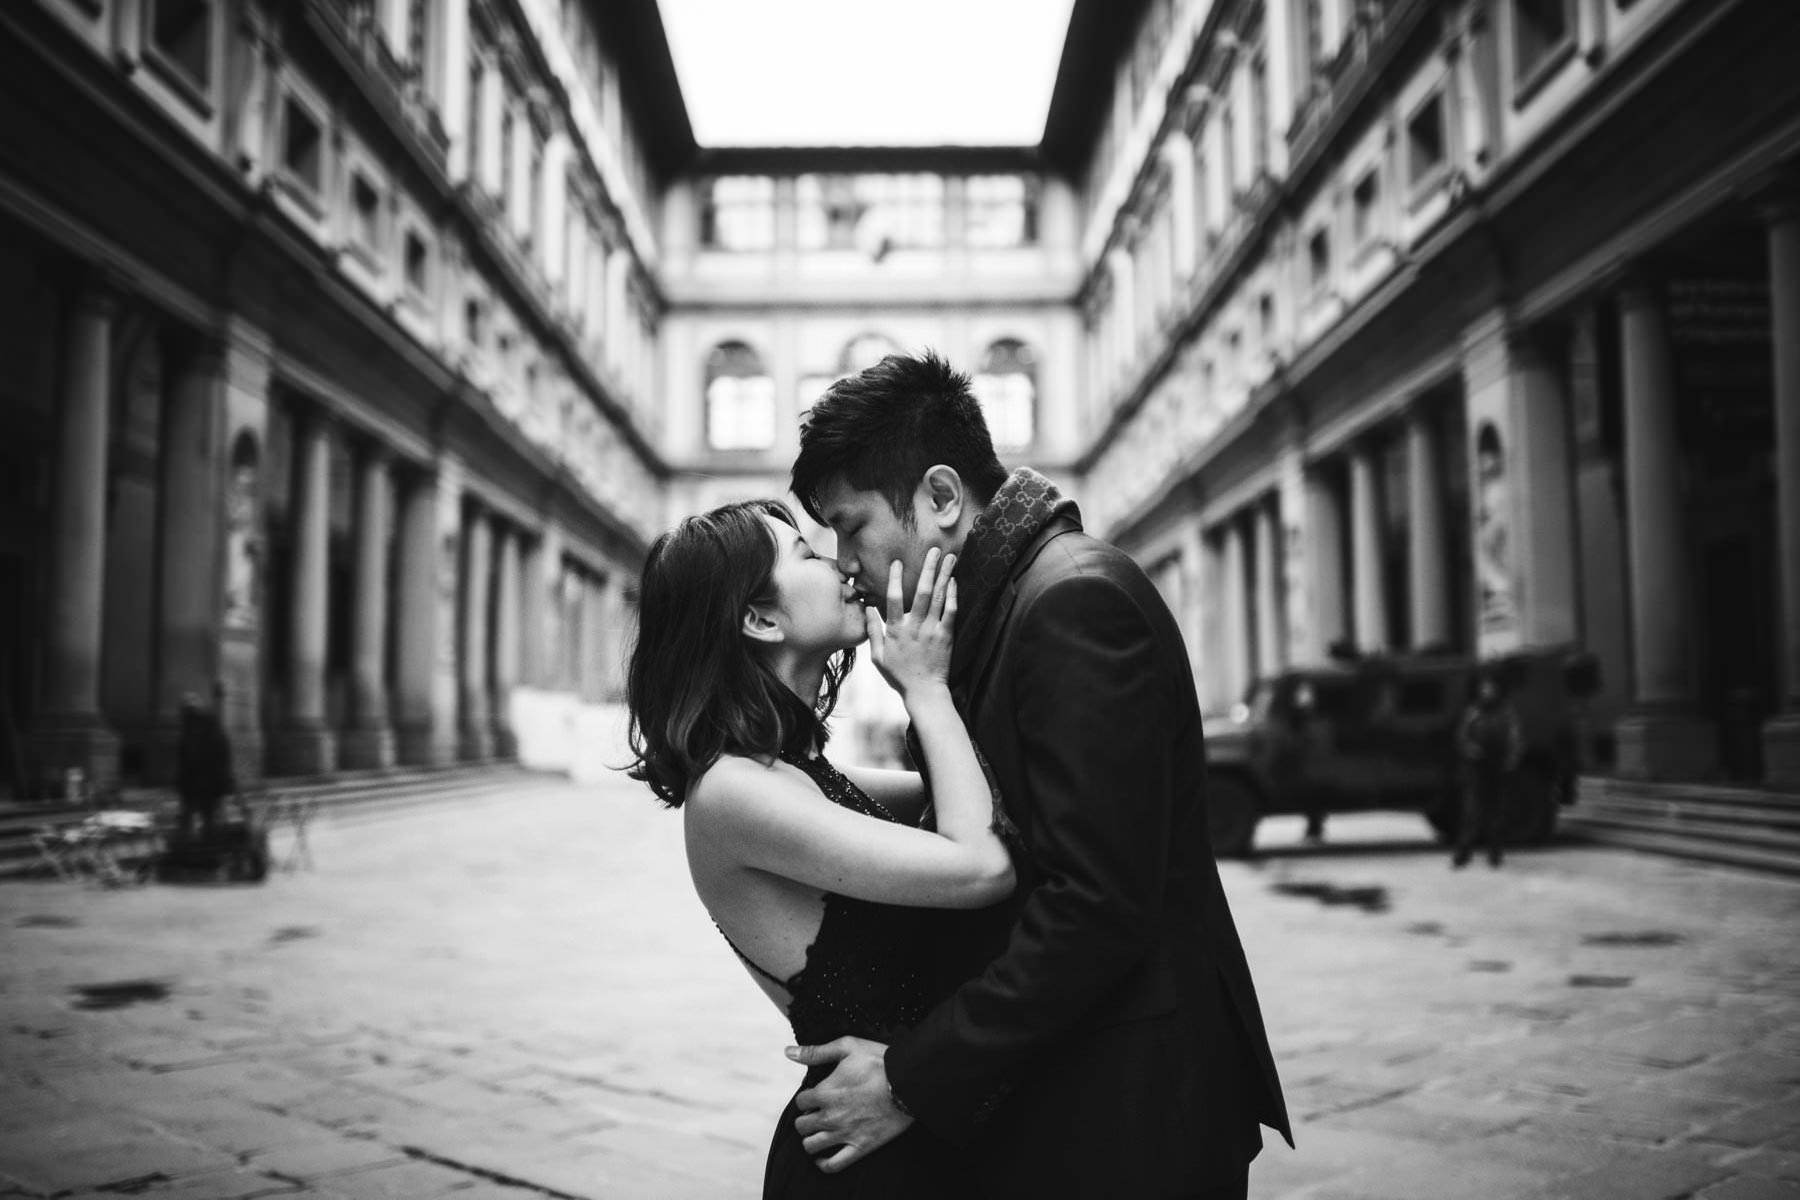 Lovely couple portrait at Uffizi Art Gallery in the heart of the cradle of Renaissance city of Florence. Engagement photo shoot by pre wedding photographer Gabriele Fani.